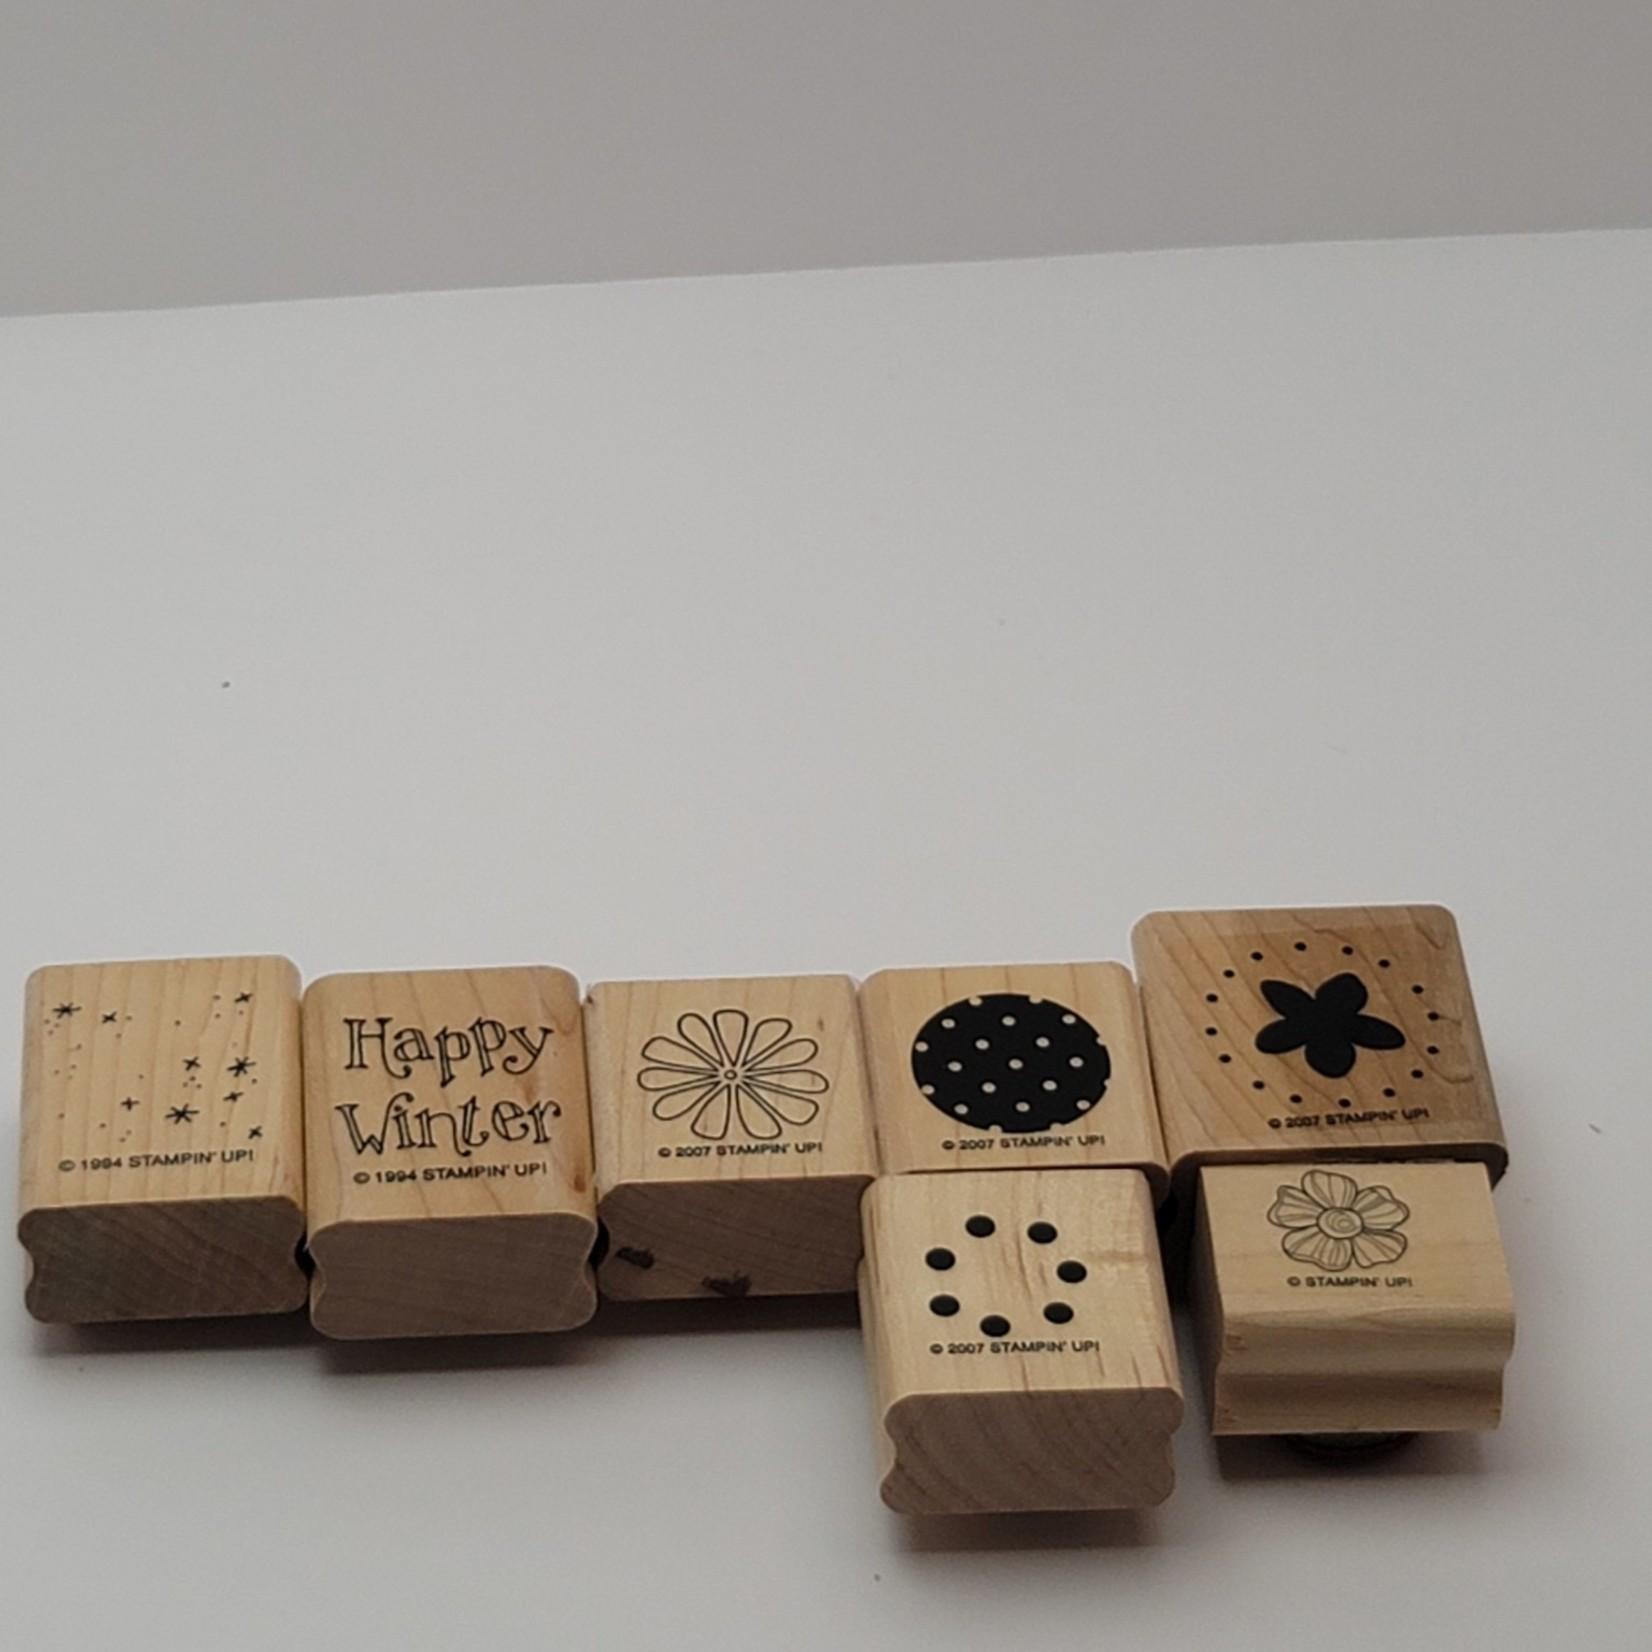 Assorted Stampin' Up Block Stamps